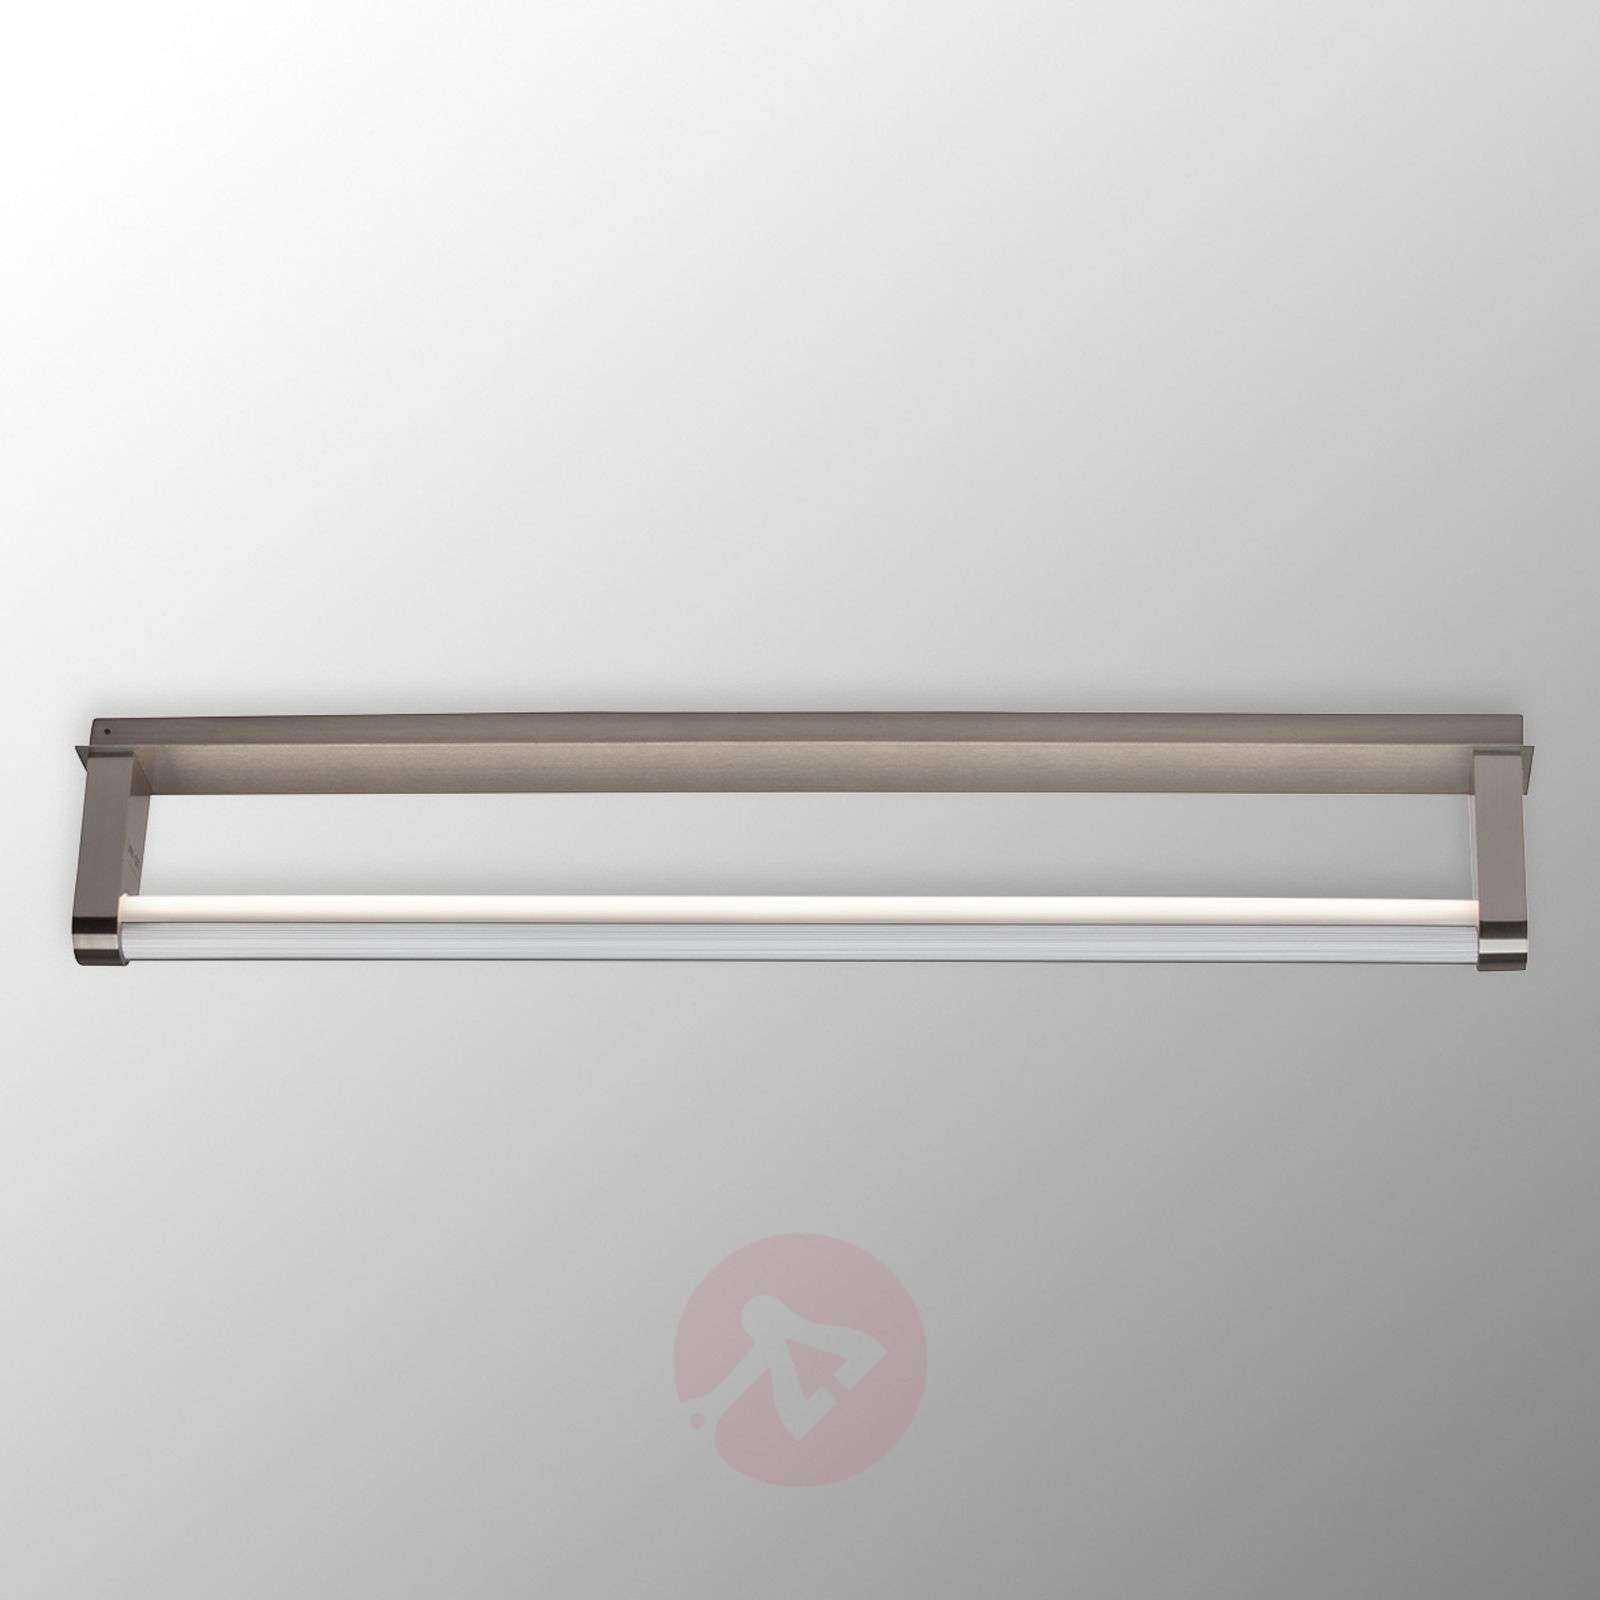 Use an led ceiling light with a rotatable tube lights use an led ceiling light with a rotatable tube 1508956 01 aloadofball Images